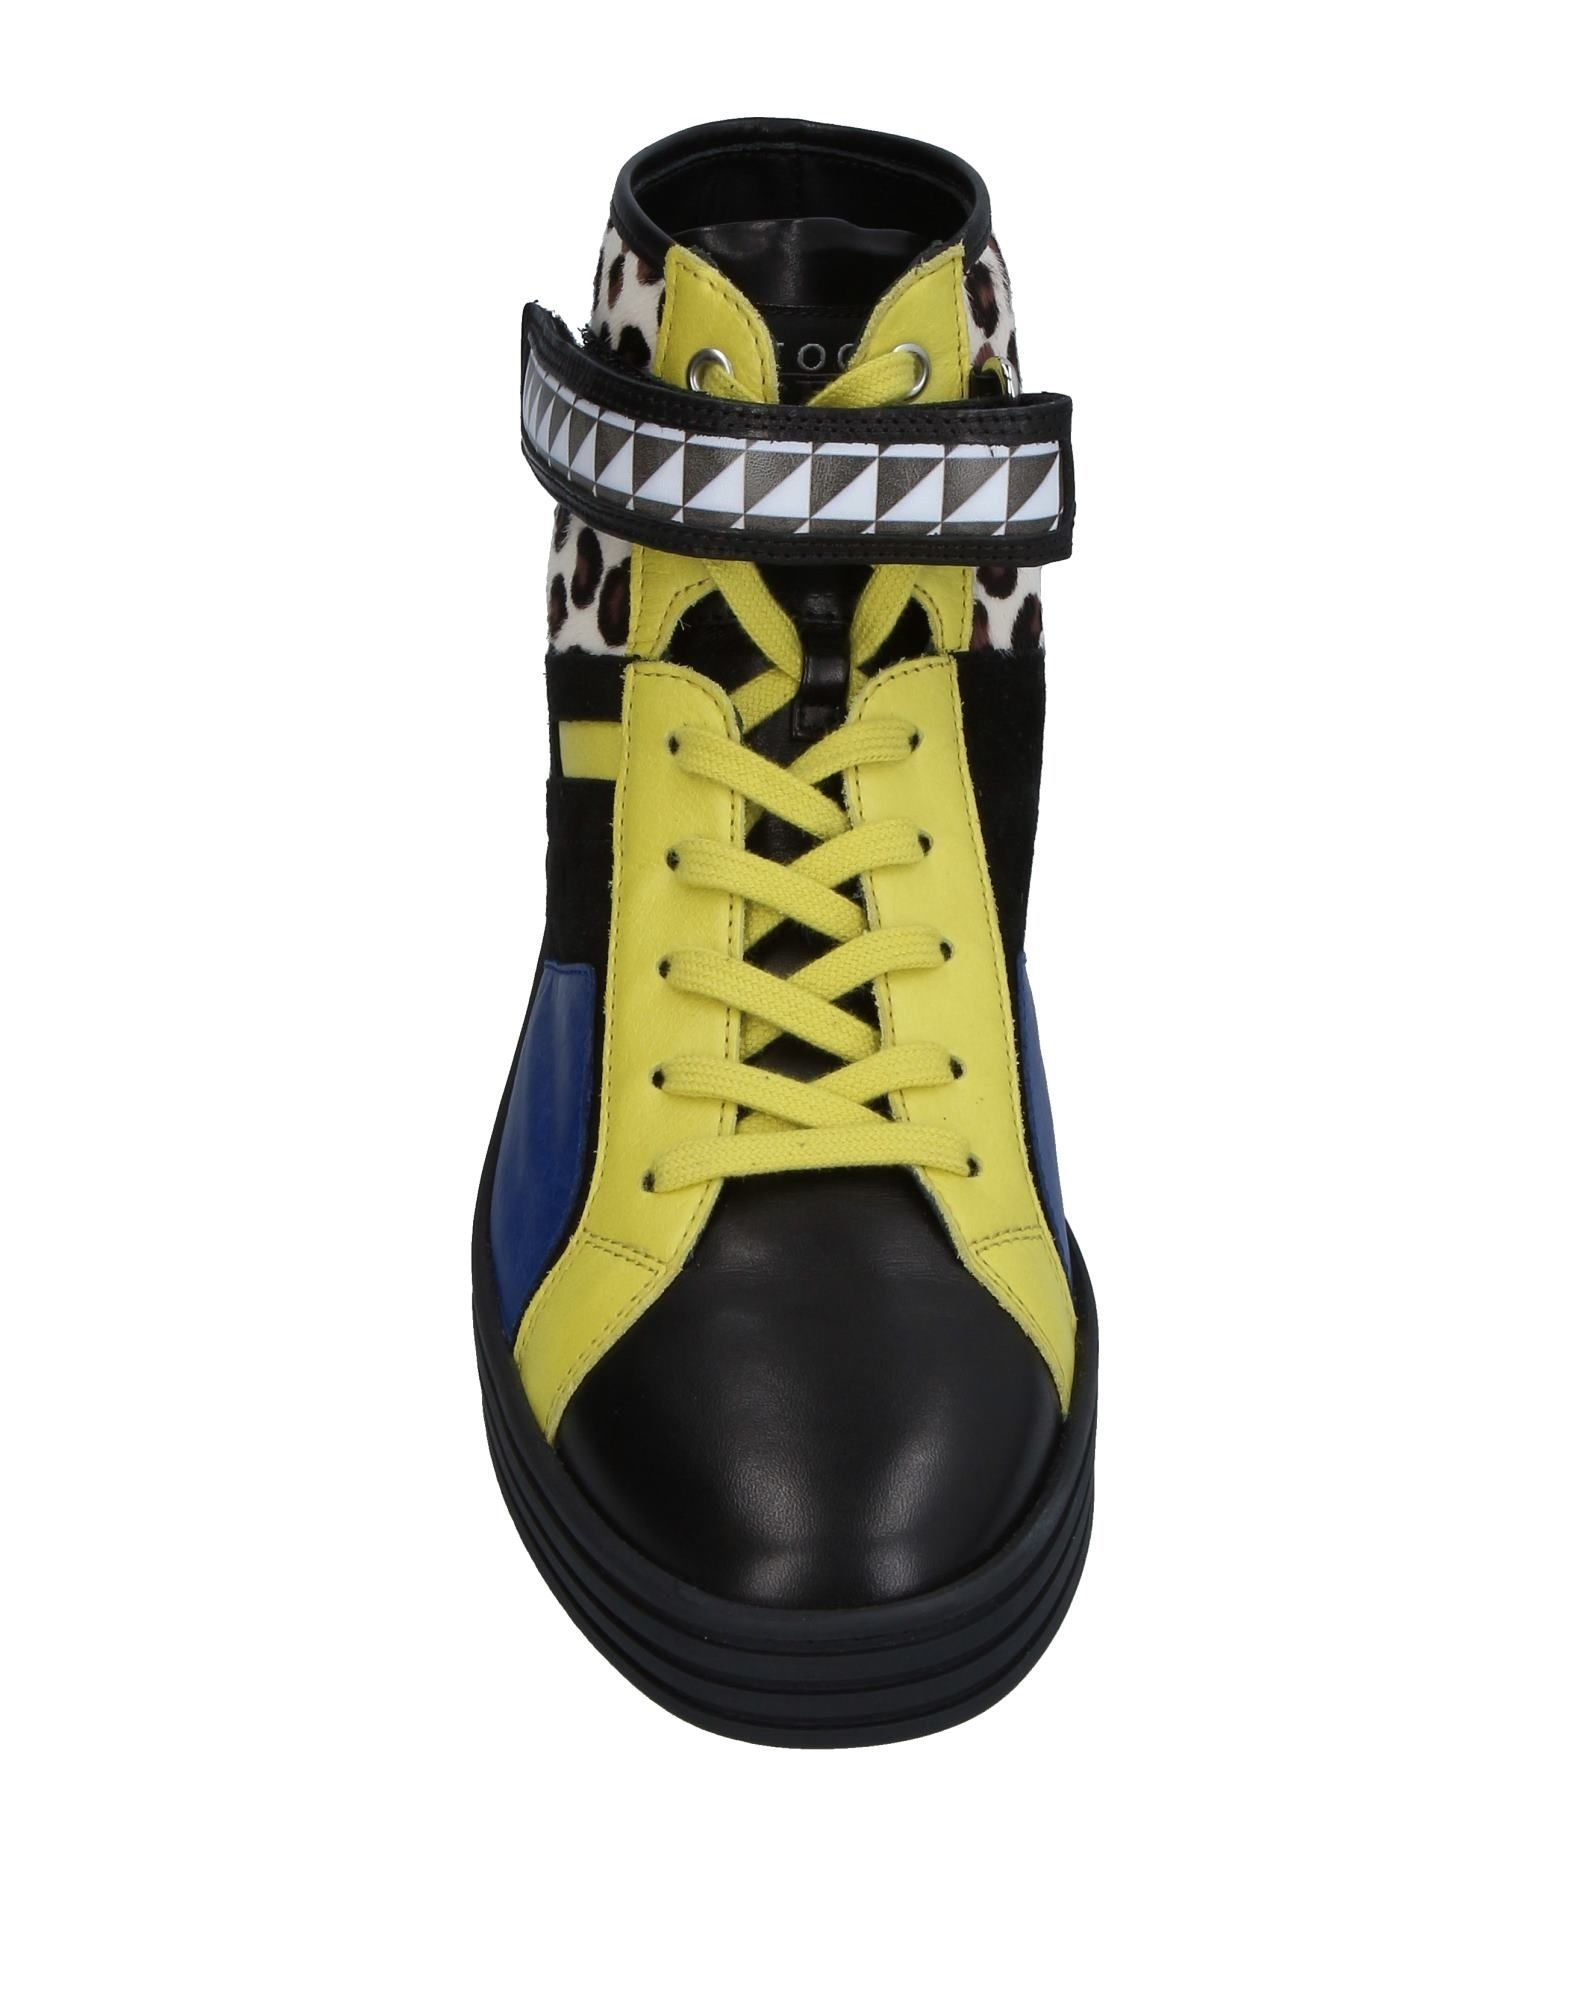 Hogan Rebel Sneakers Sneakers Sneakers - Women Hogan Rebel Sneakers online on  United Kingdom - 11270556ON d8b817